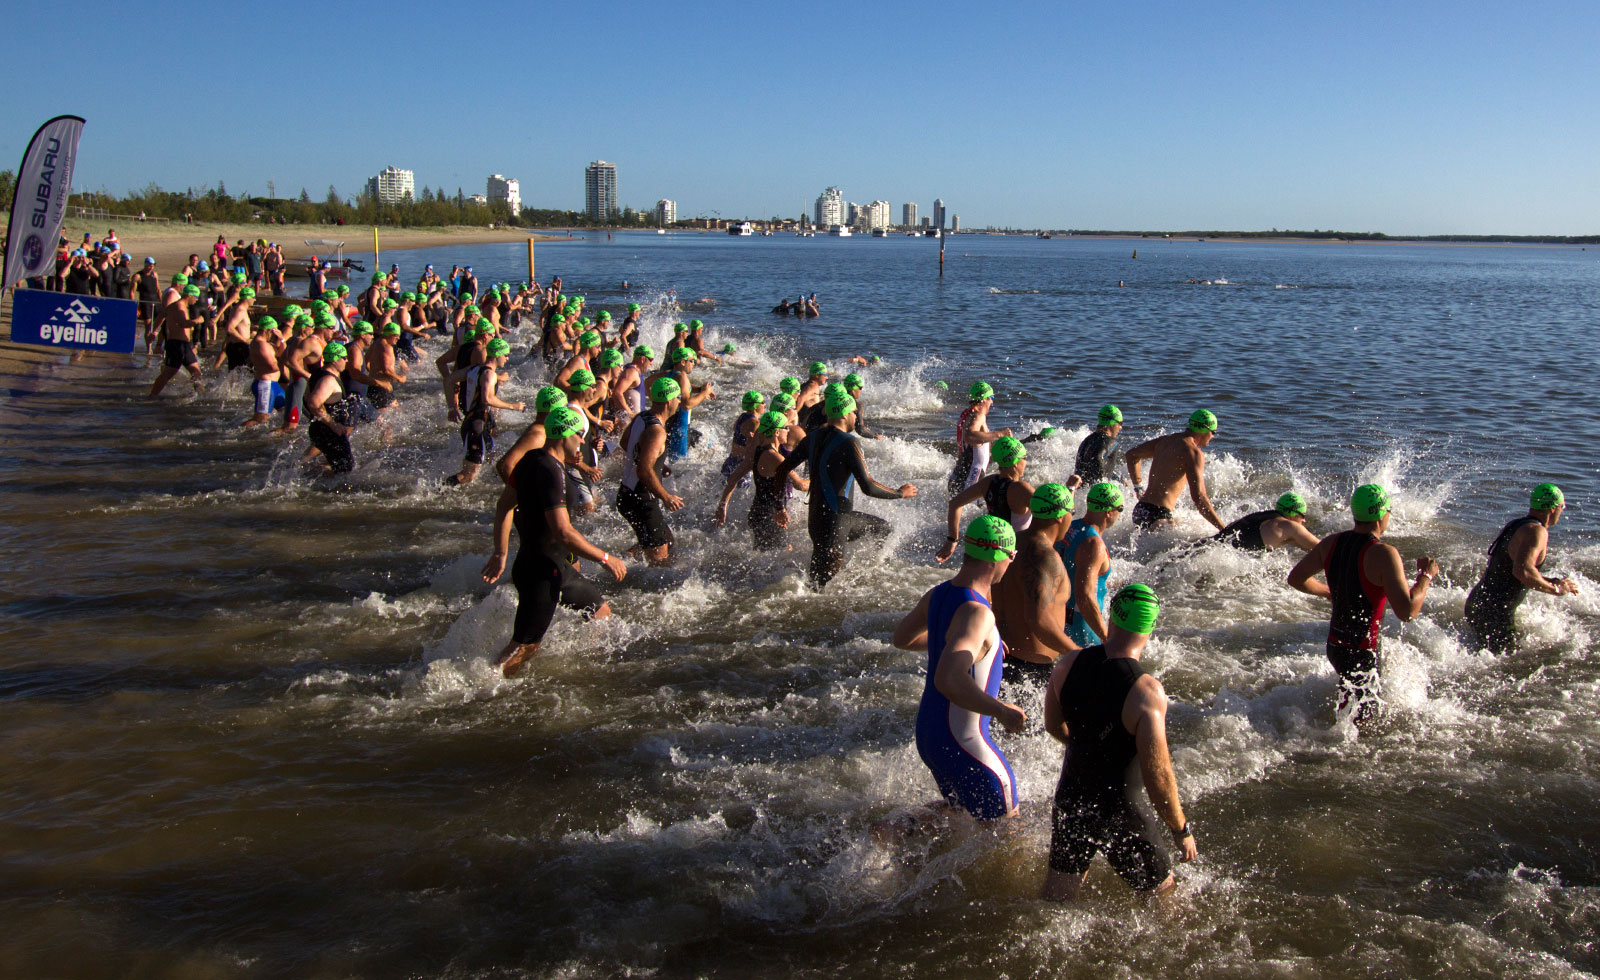 THE FAVORITES FALL AT THE GOLD COAST HALF IRONMAN